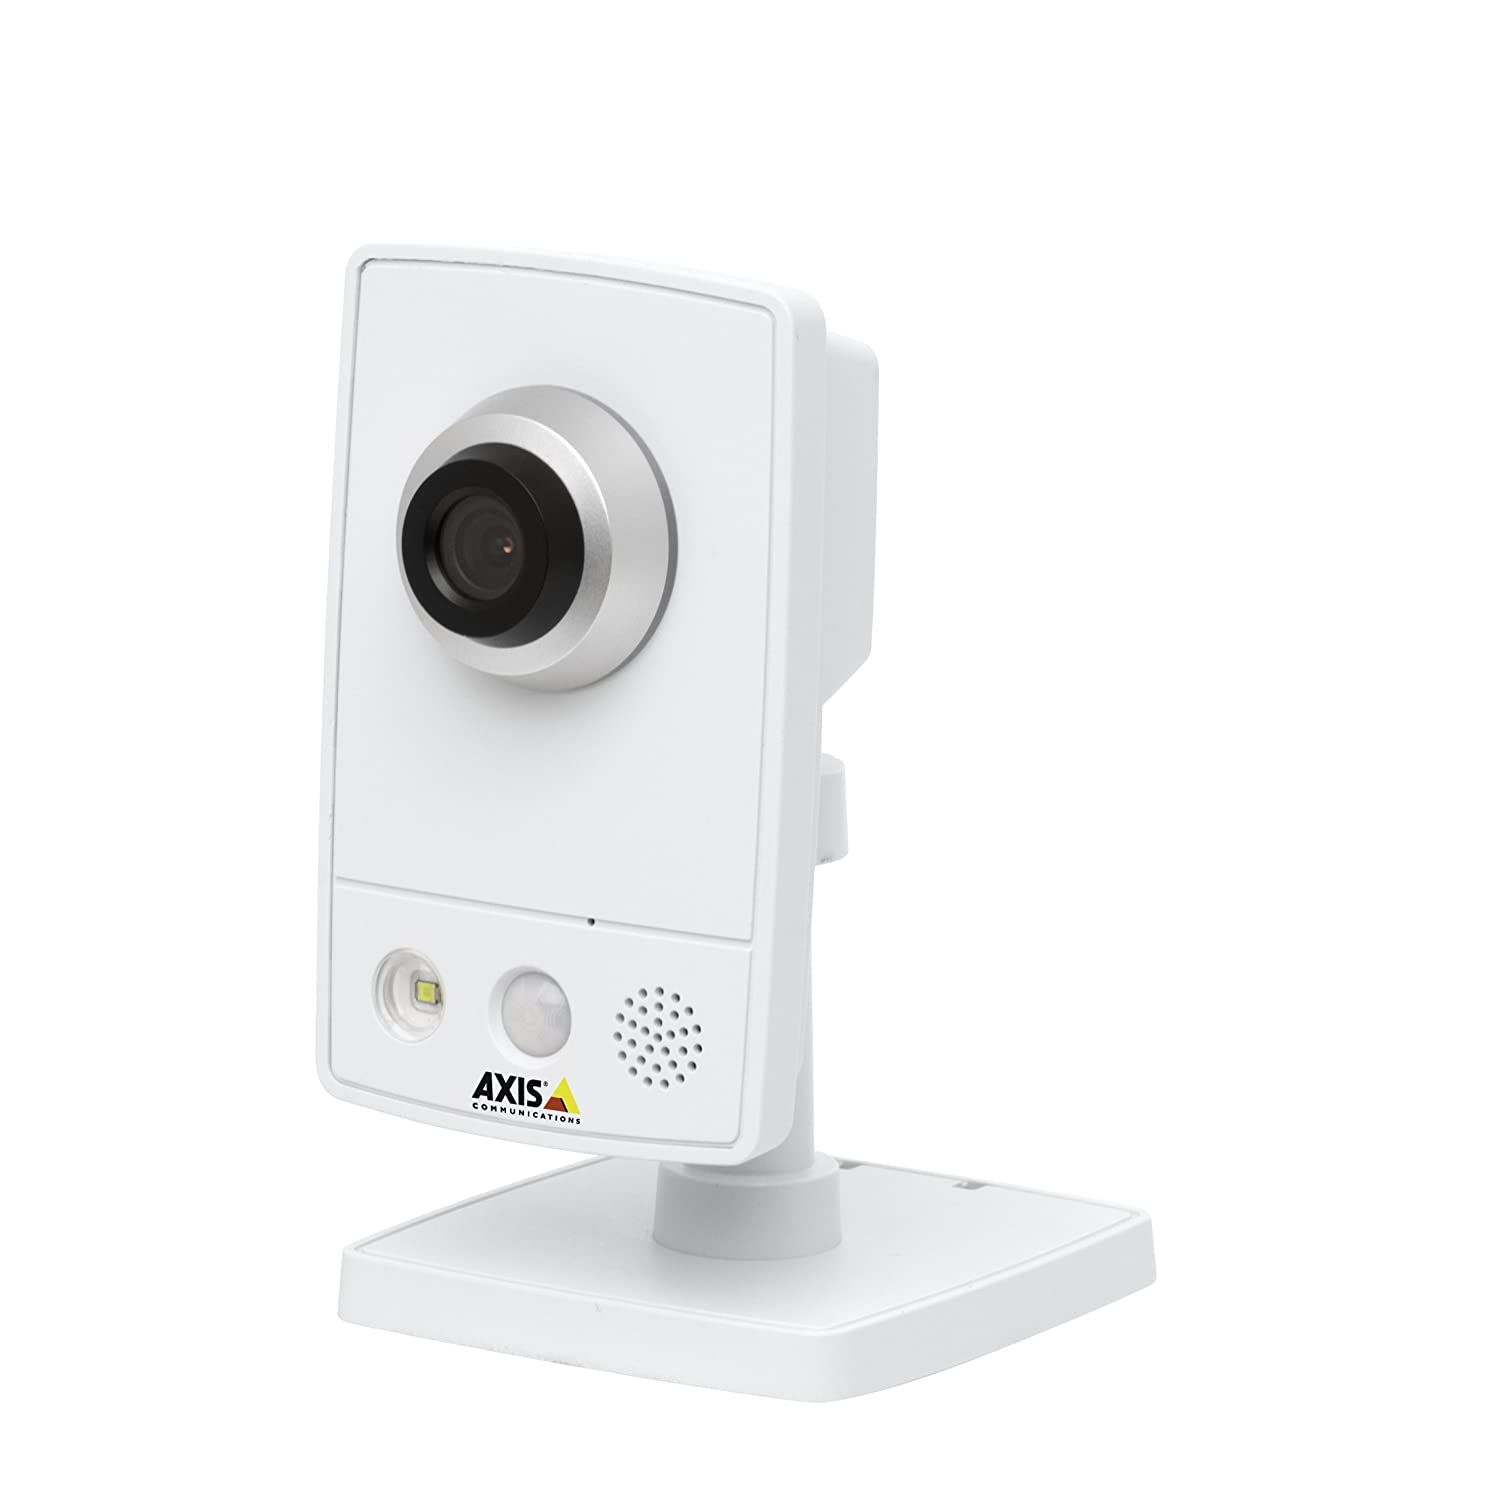 Amazon.com : AXIS Communications M1054 720p Network Camera (0338 ...